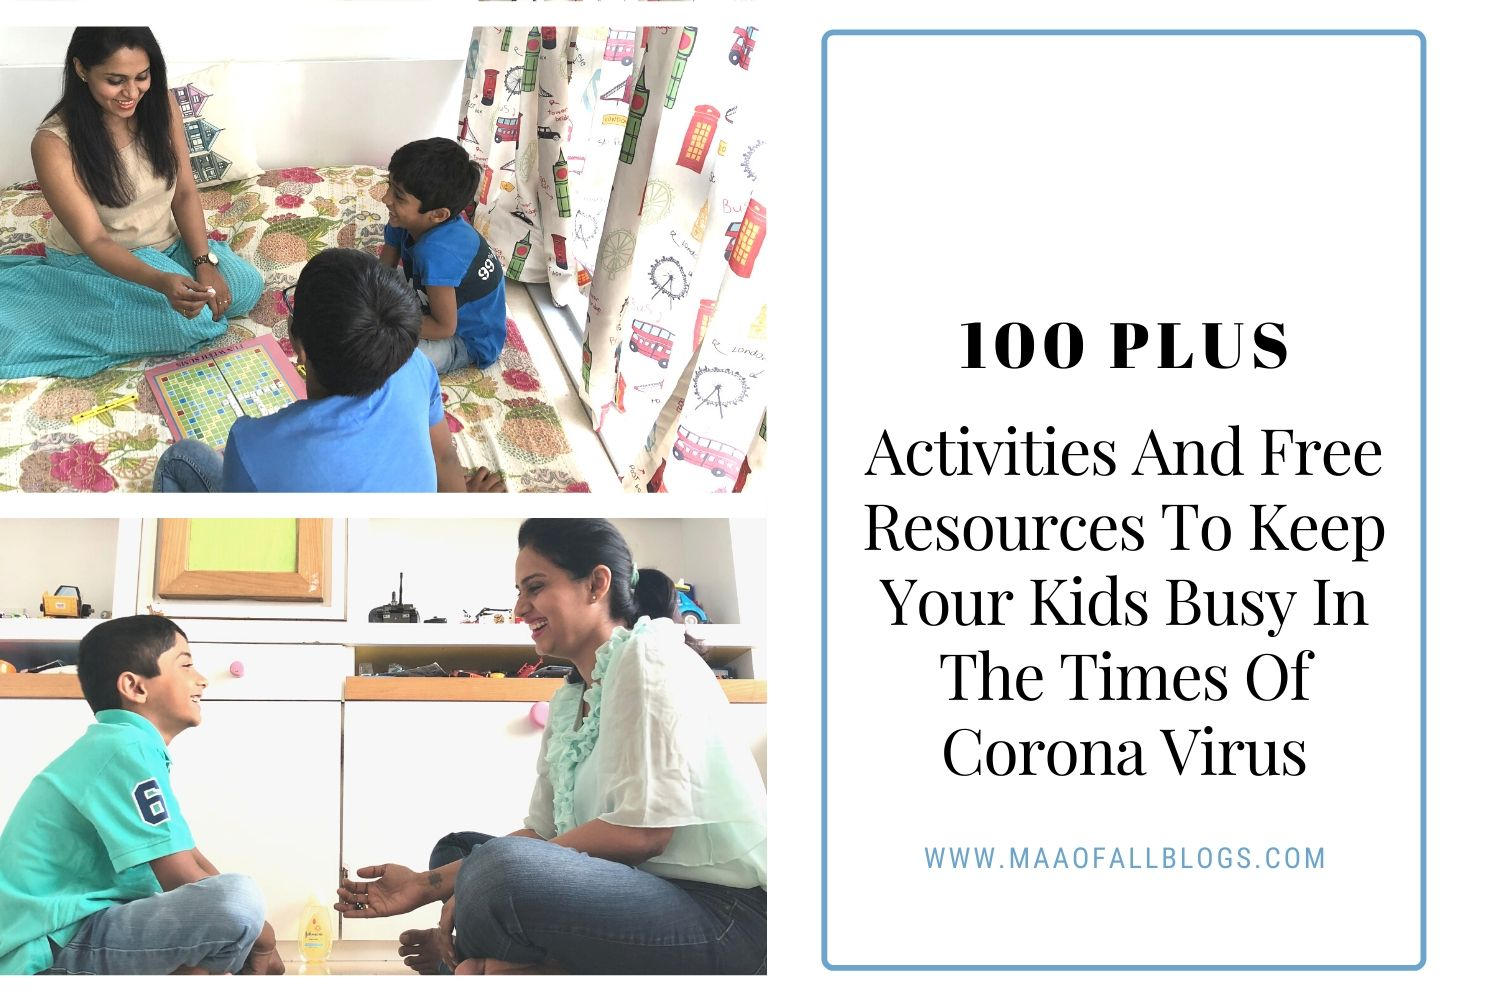 100 Plus Kids Activities And Free Resources To Keep Your Kids Busy In The Times Of Corona Virus